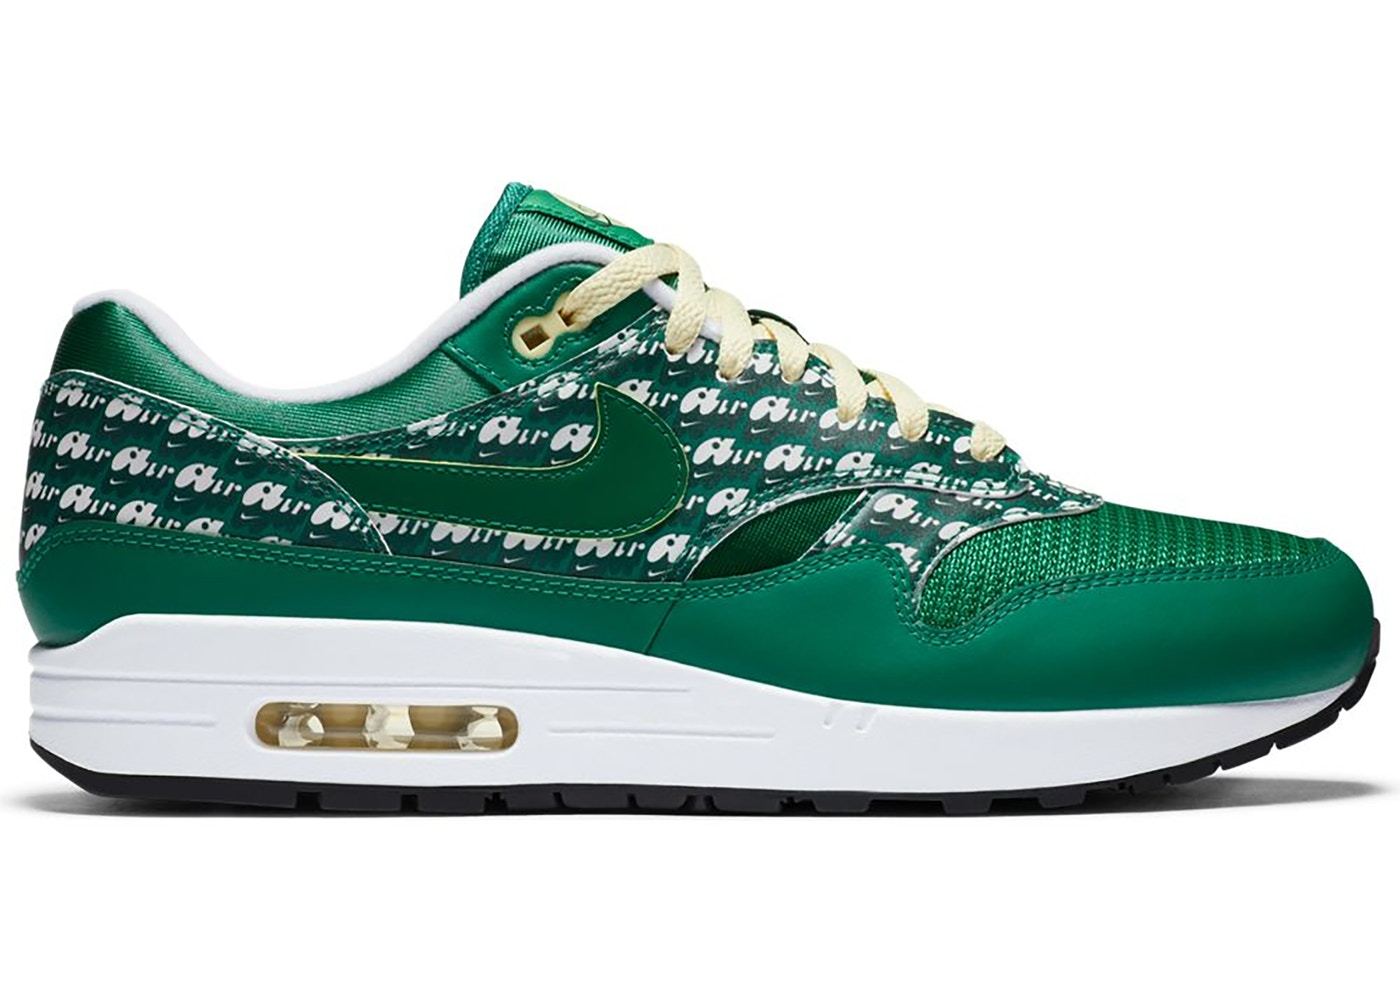 Sacrificio borde cerca  Nike Air Max 1 Limeade (2020) - CJ0609-300